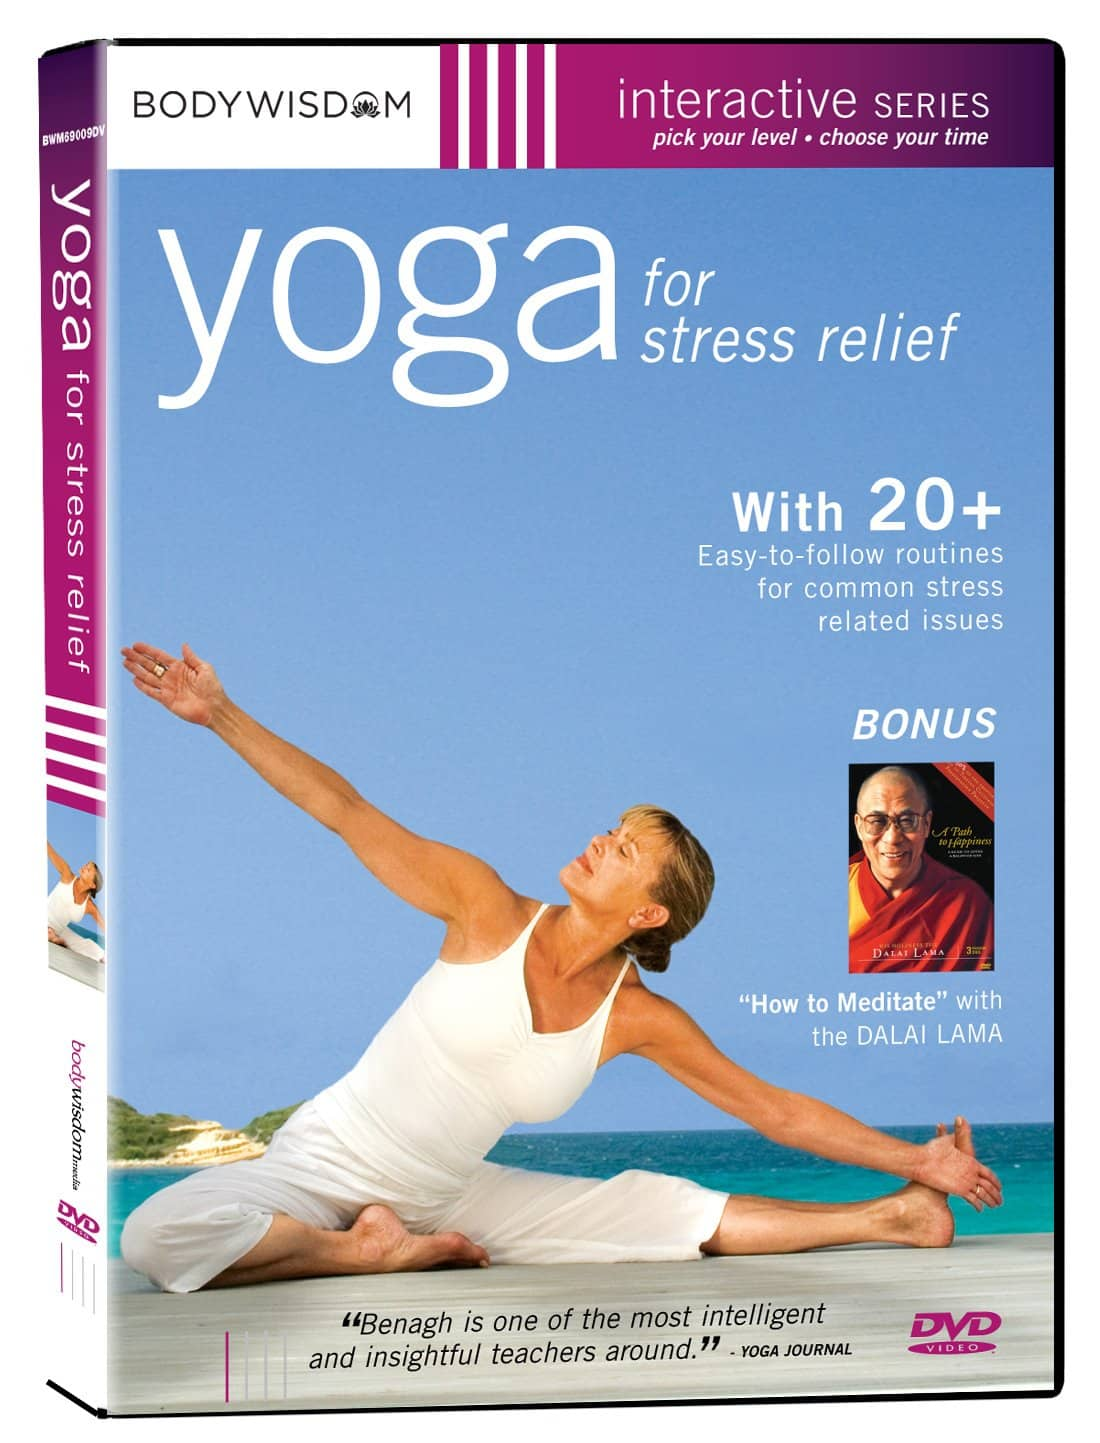 Yoga Exercise Videos for Stress Relief